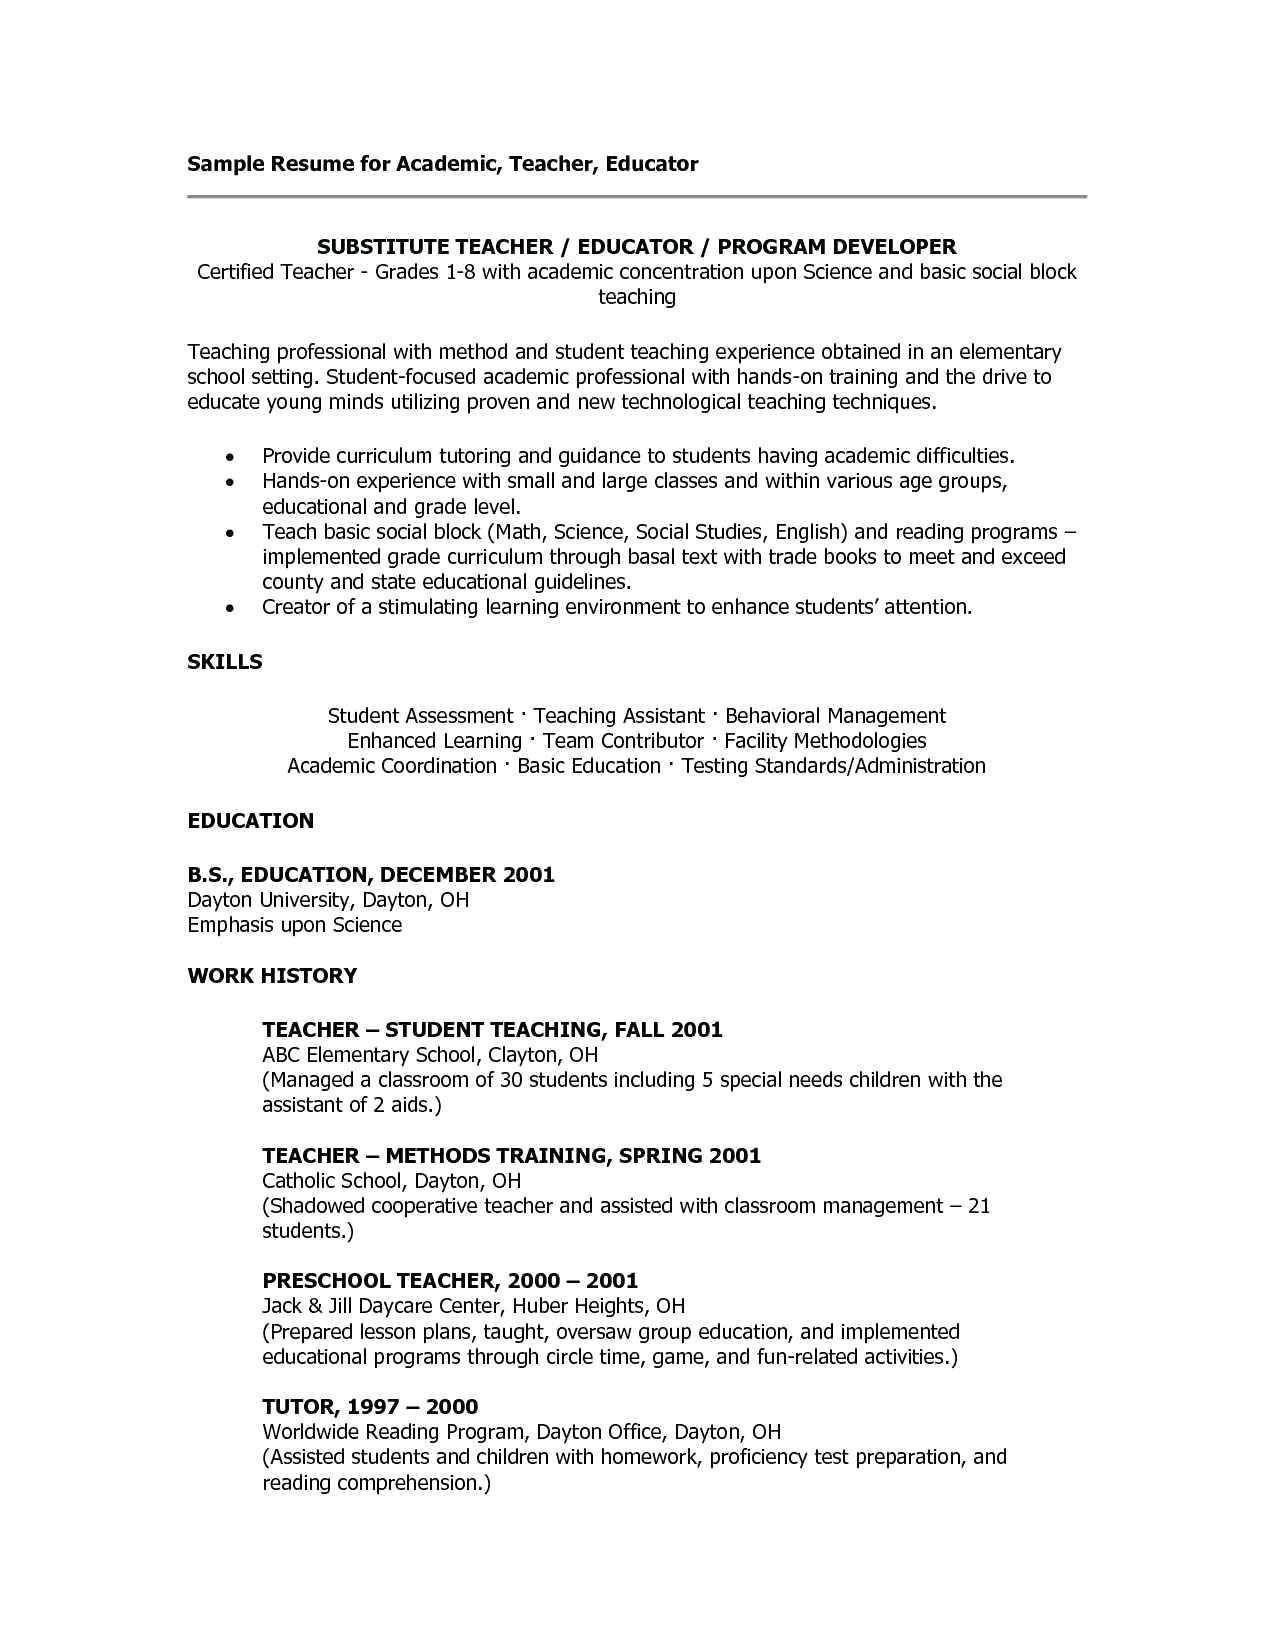 Cover Letter Templates Free Australia